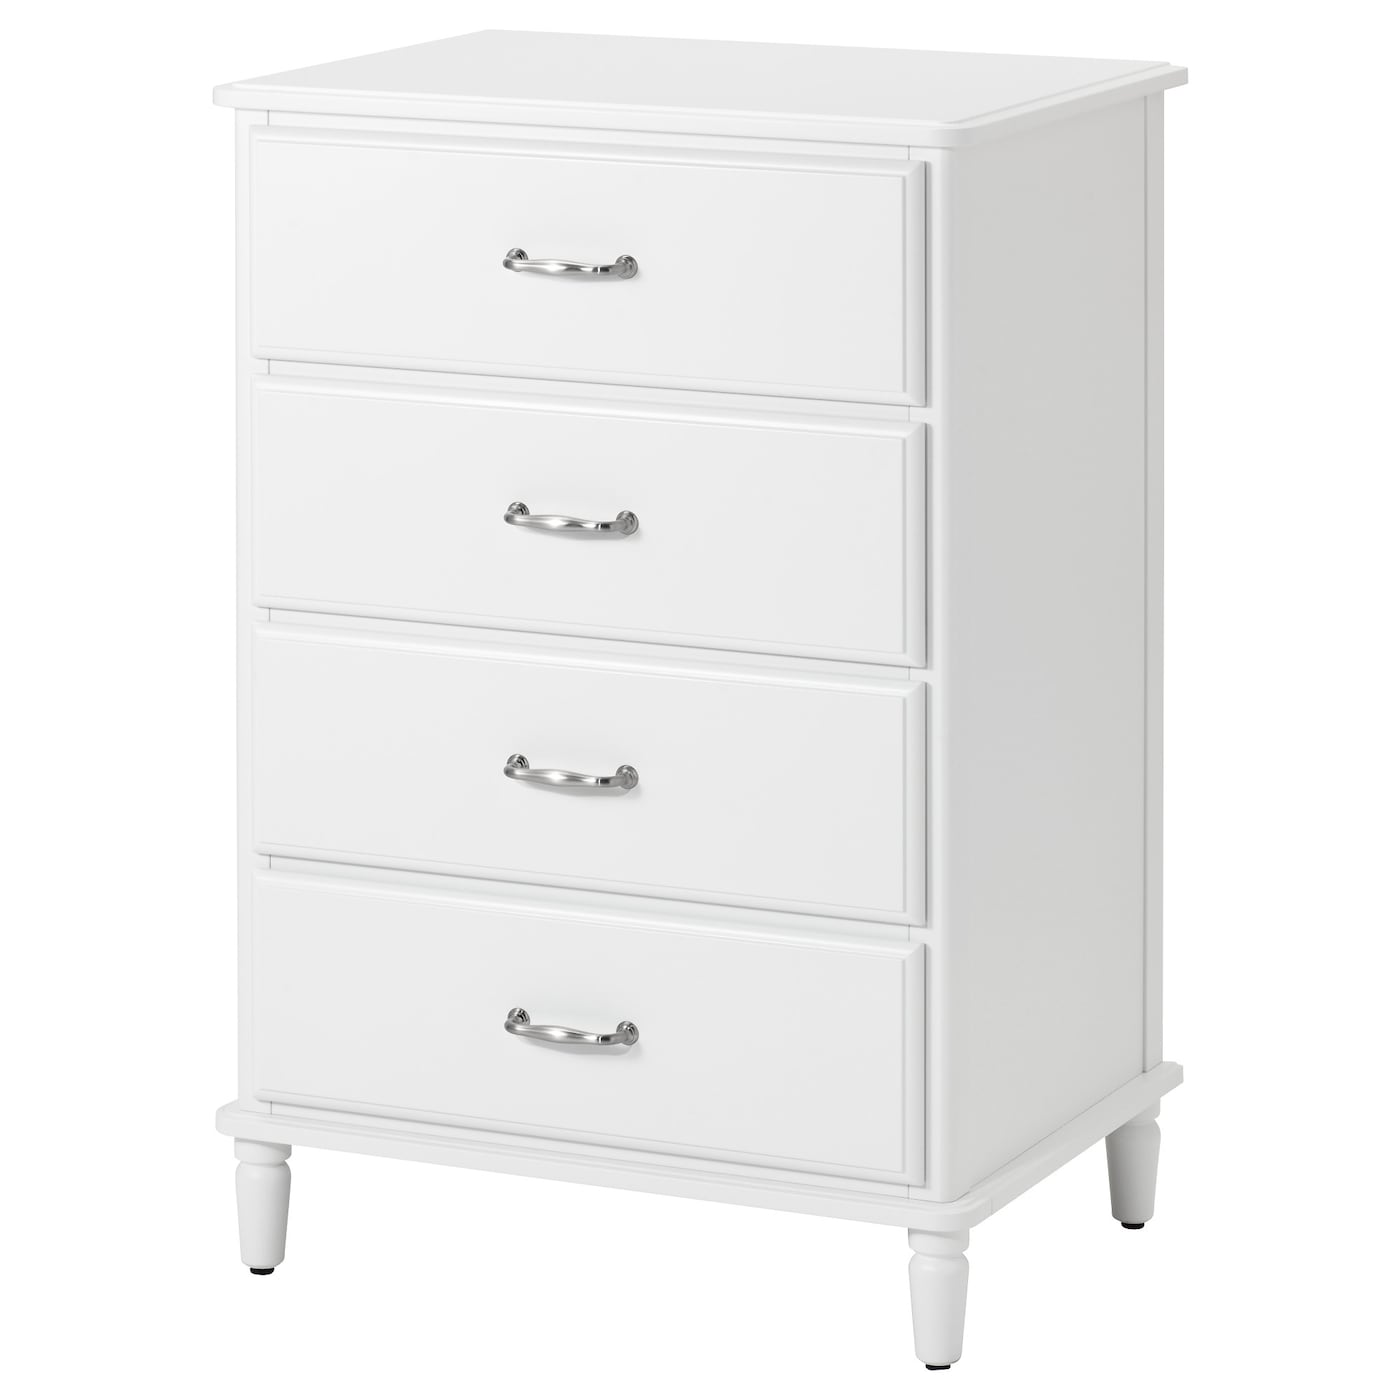 chest of drawers dressers ikea. Black Bedroom Furniture Sets. Home Design Ideas